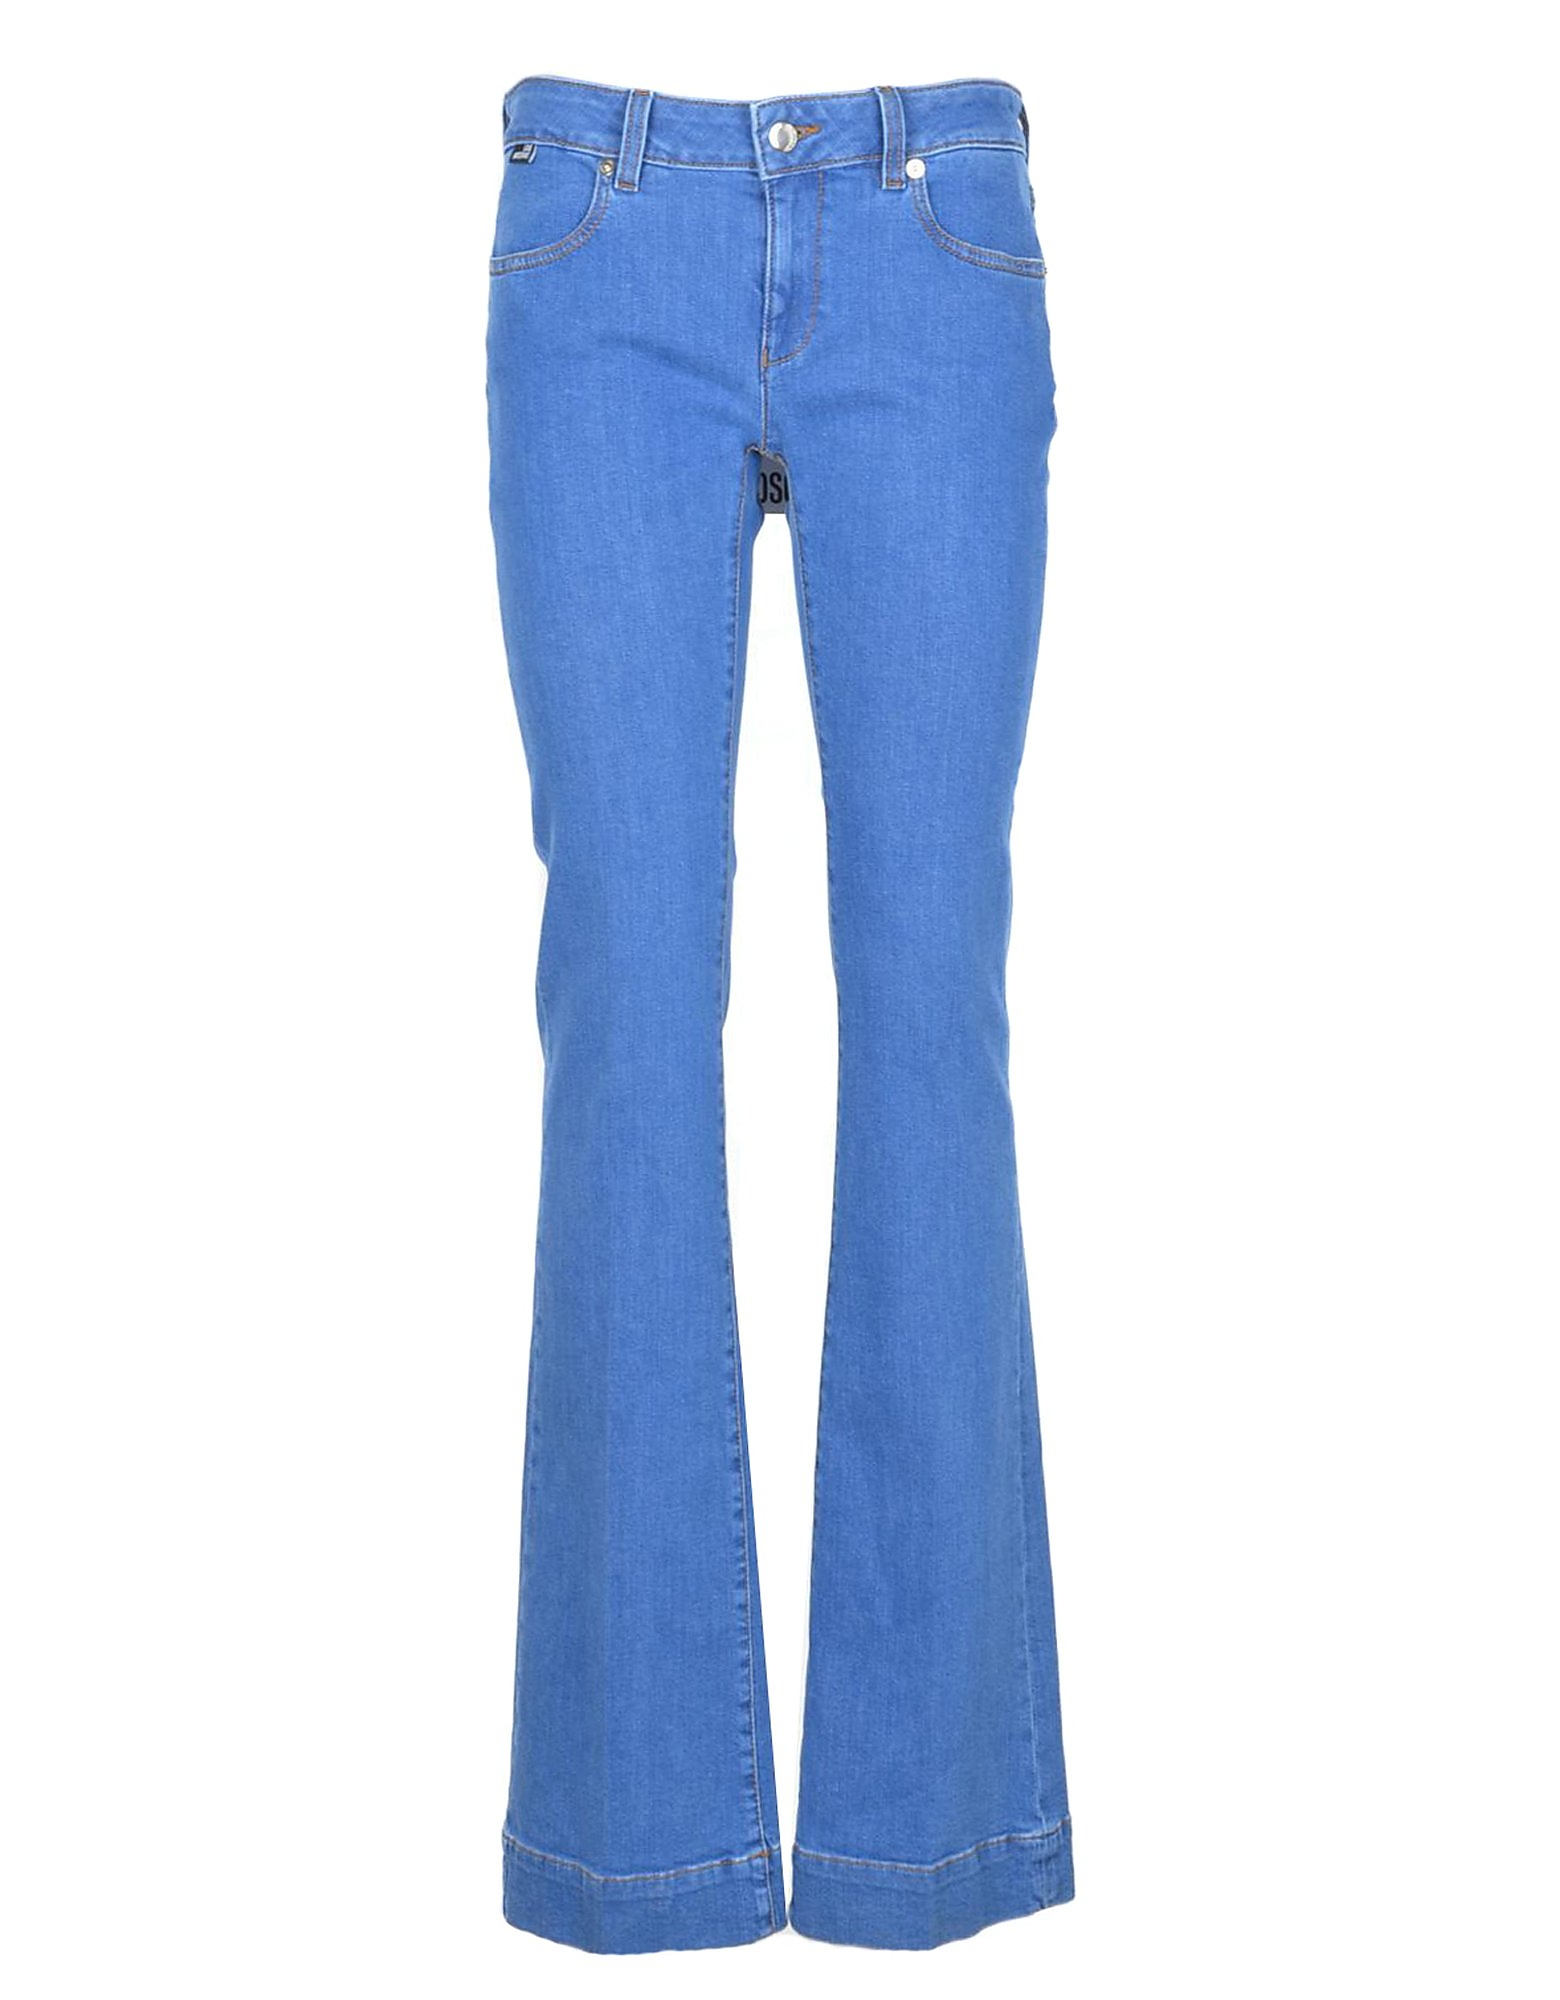 Love Moschino Designer Jeans, Women's Sky Blue Jeans